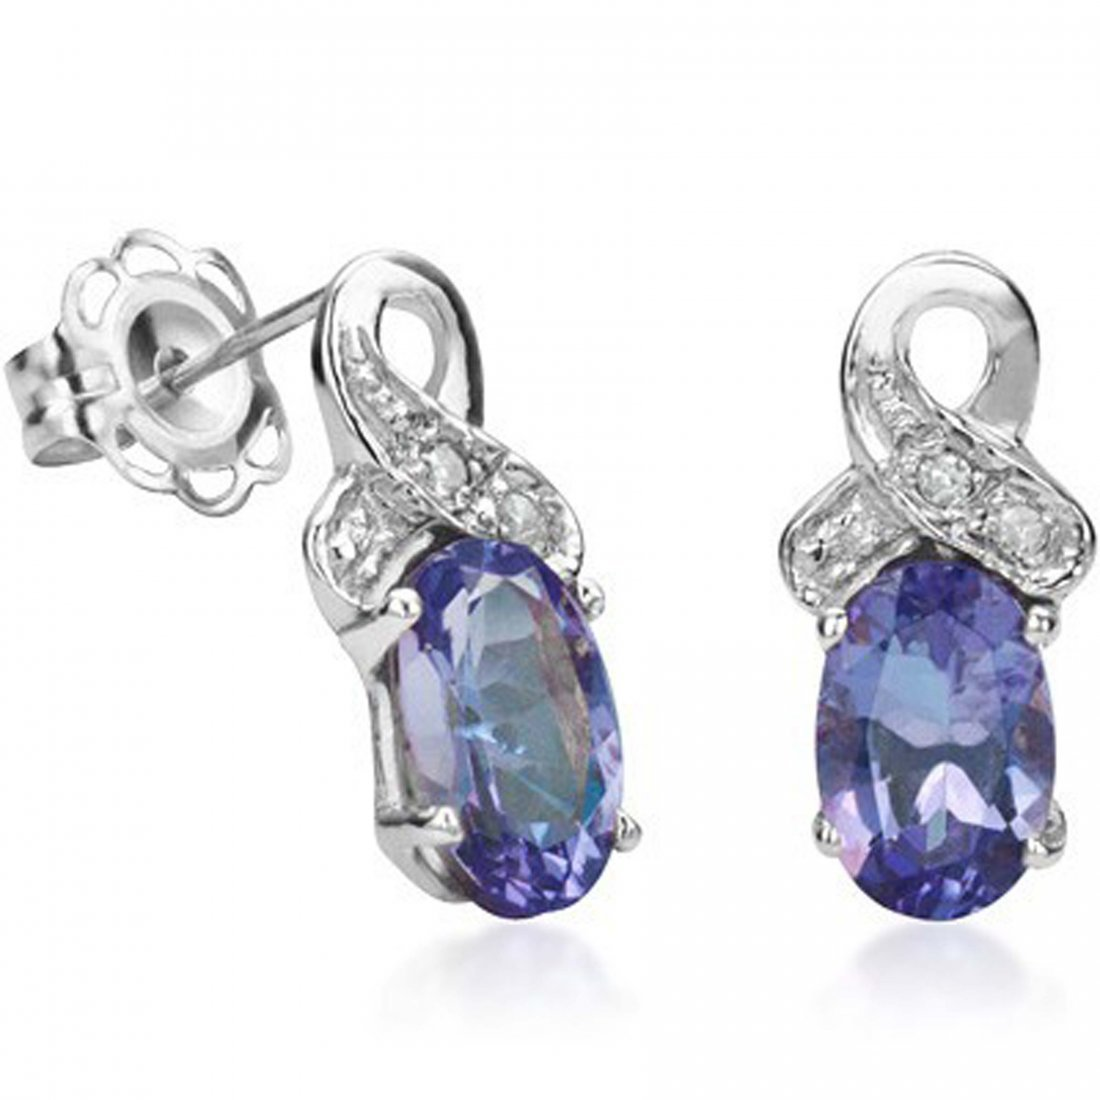 STUNNING .75CT TANZANITE/DIAMOND OVAL EARRINGS